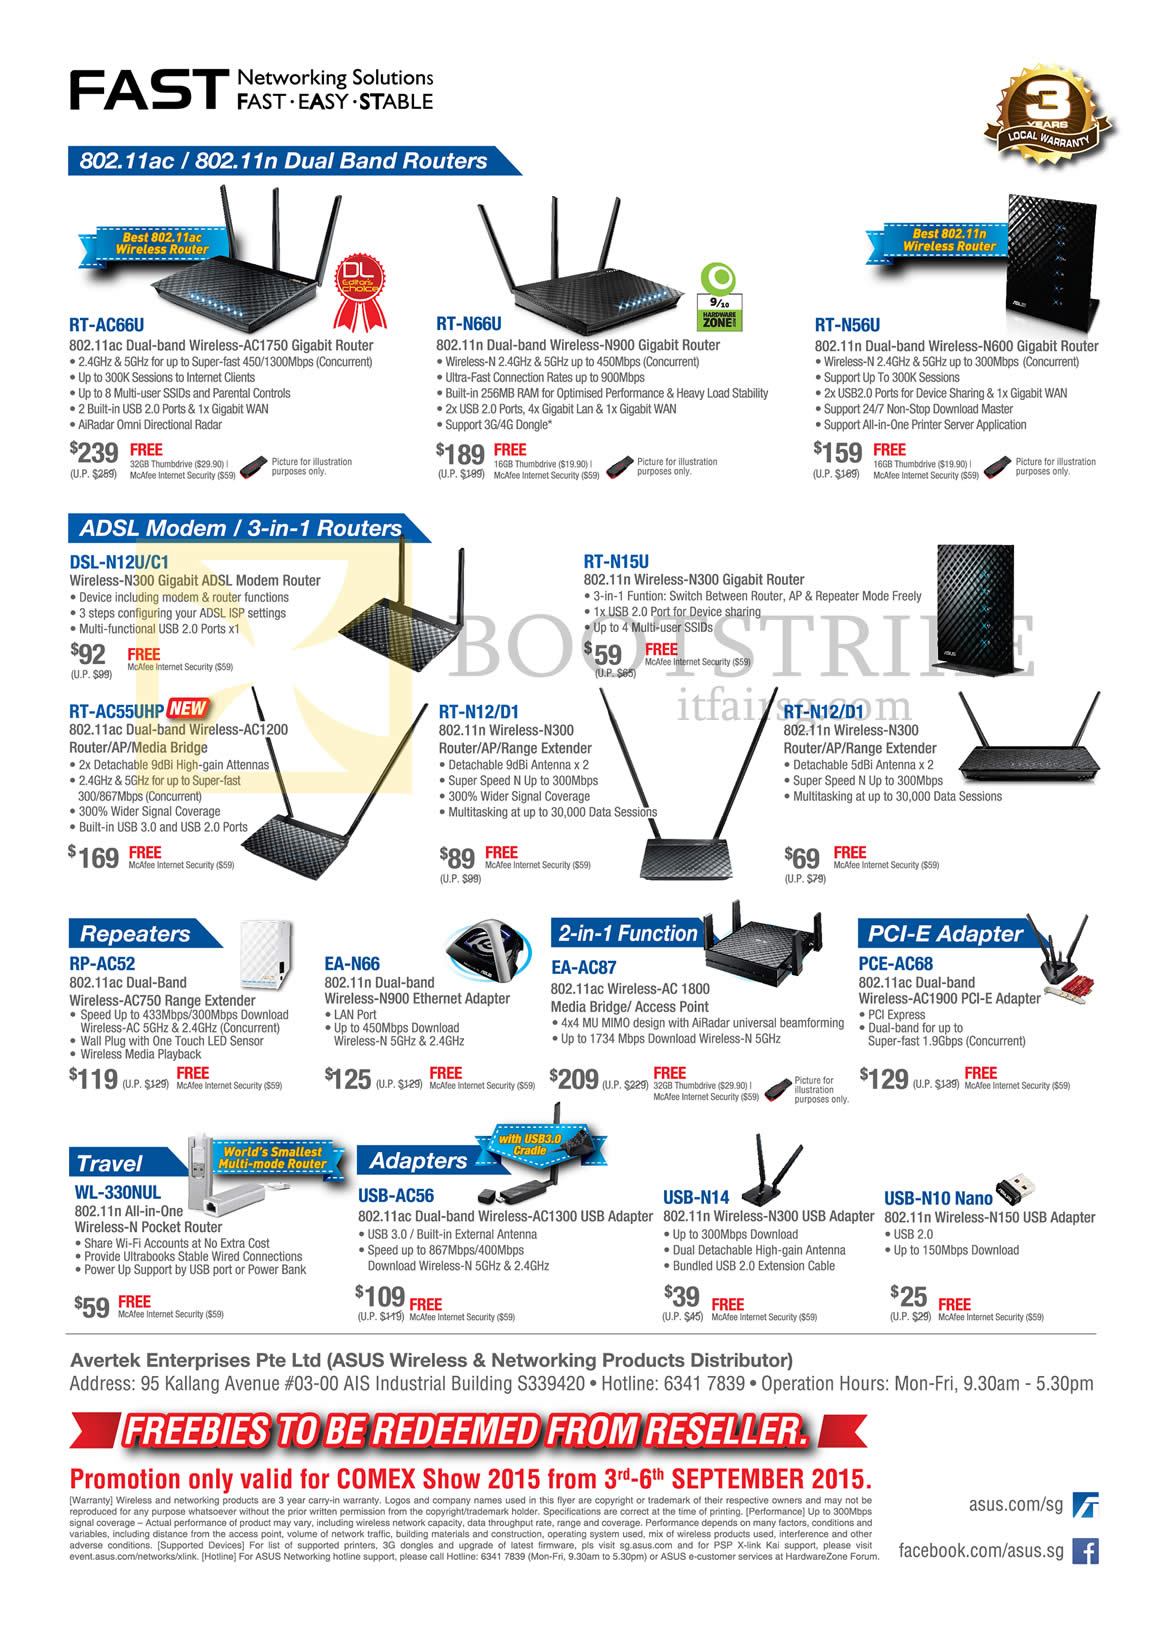 COMEX 2015 price list image brochure of ASUS Networking Wireless Routers, Repeaters, USB Adapters, ADSL Modem, Pocket, RT-AC66U, RT-N66U, RT-N56U, DSL-N12U C1, RT-N15U, RT-AC55UHP, RT-N12D1, RT-N12D1